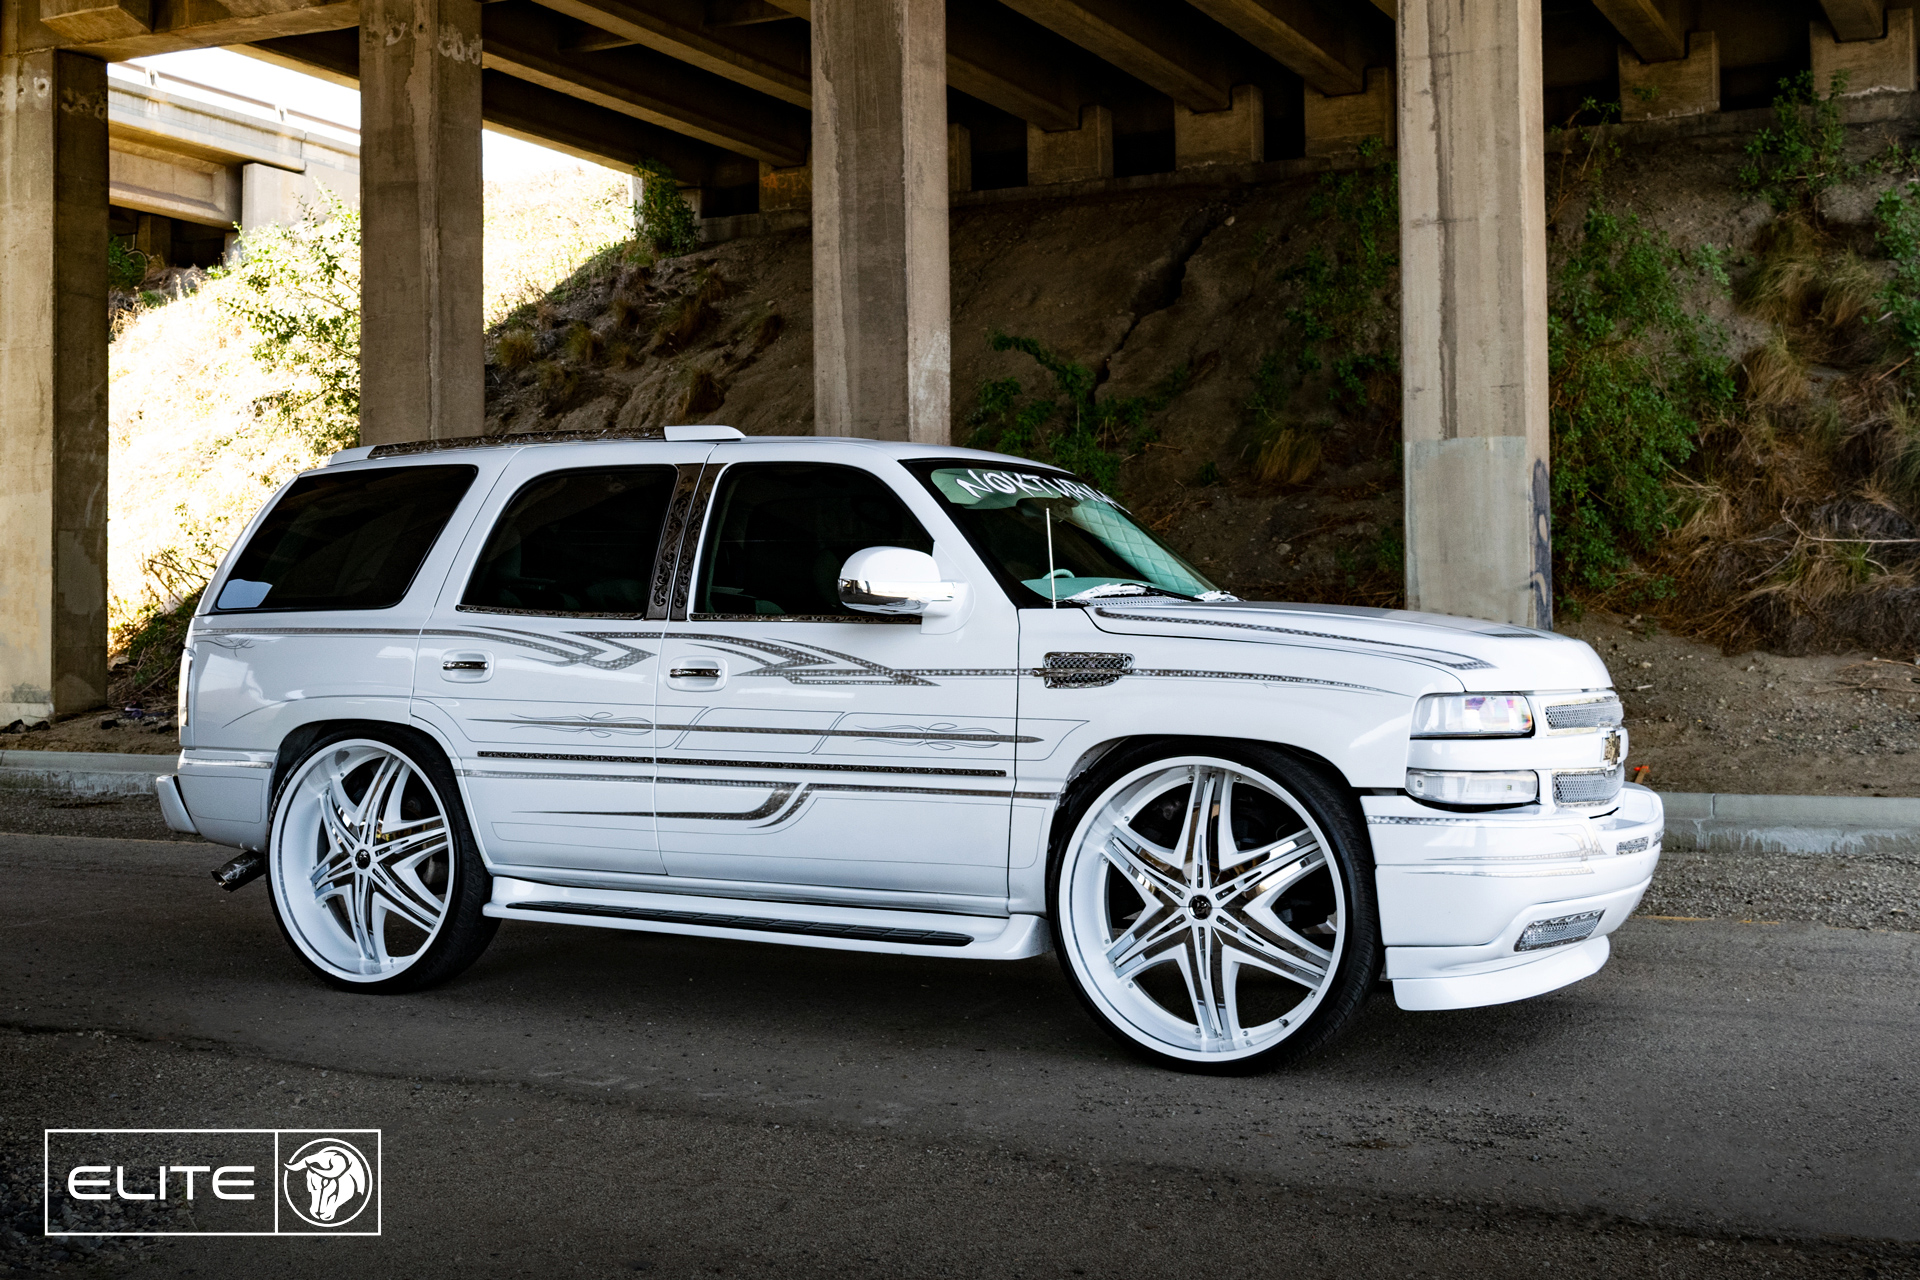 Elite Diablo Wheels Chevrolet Tahoe NOK White